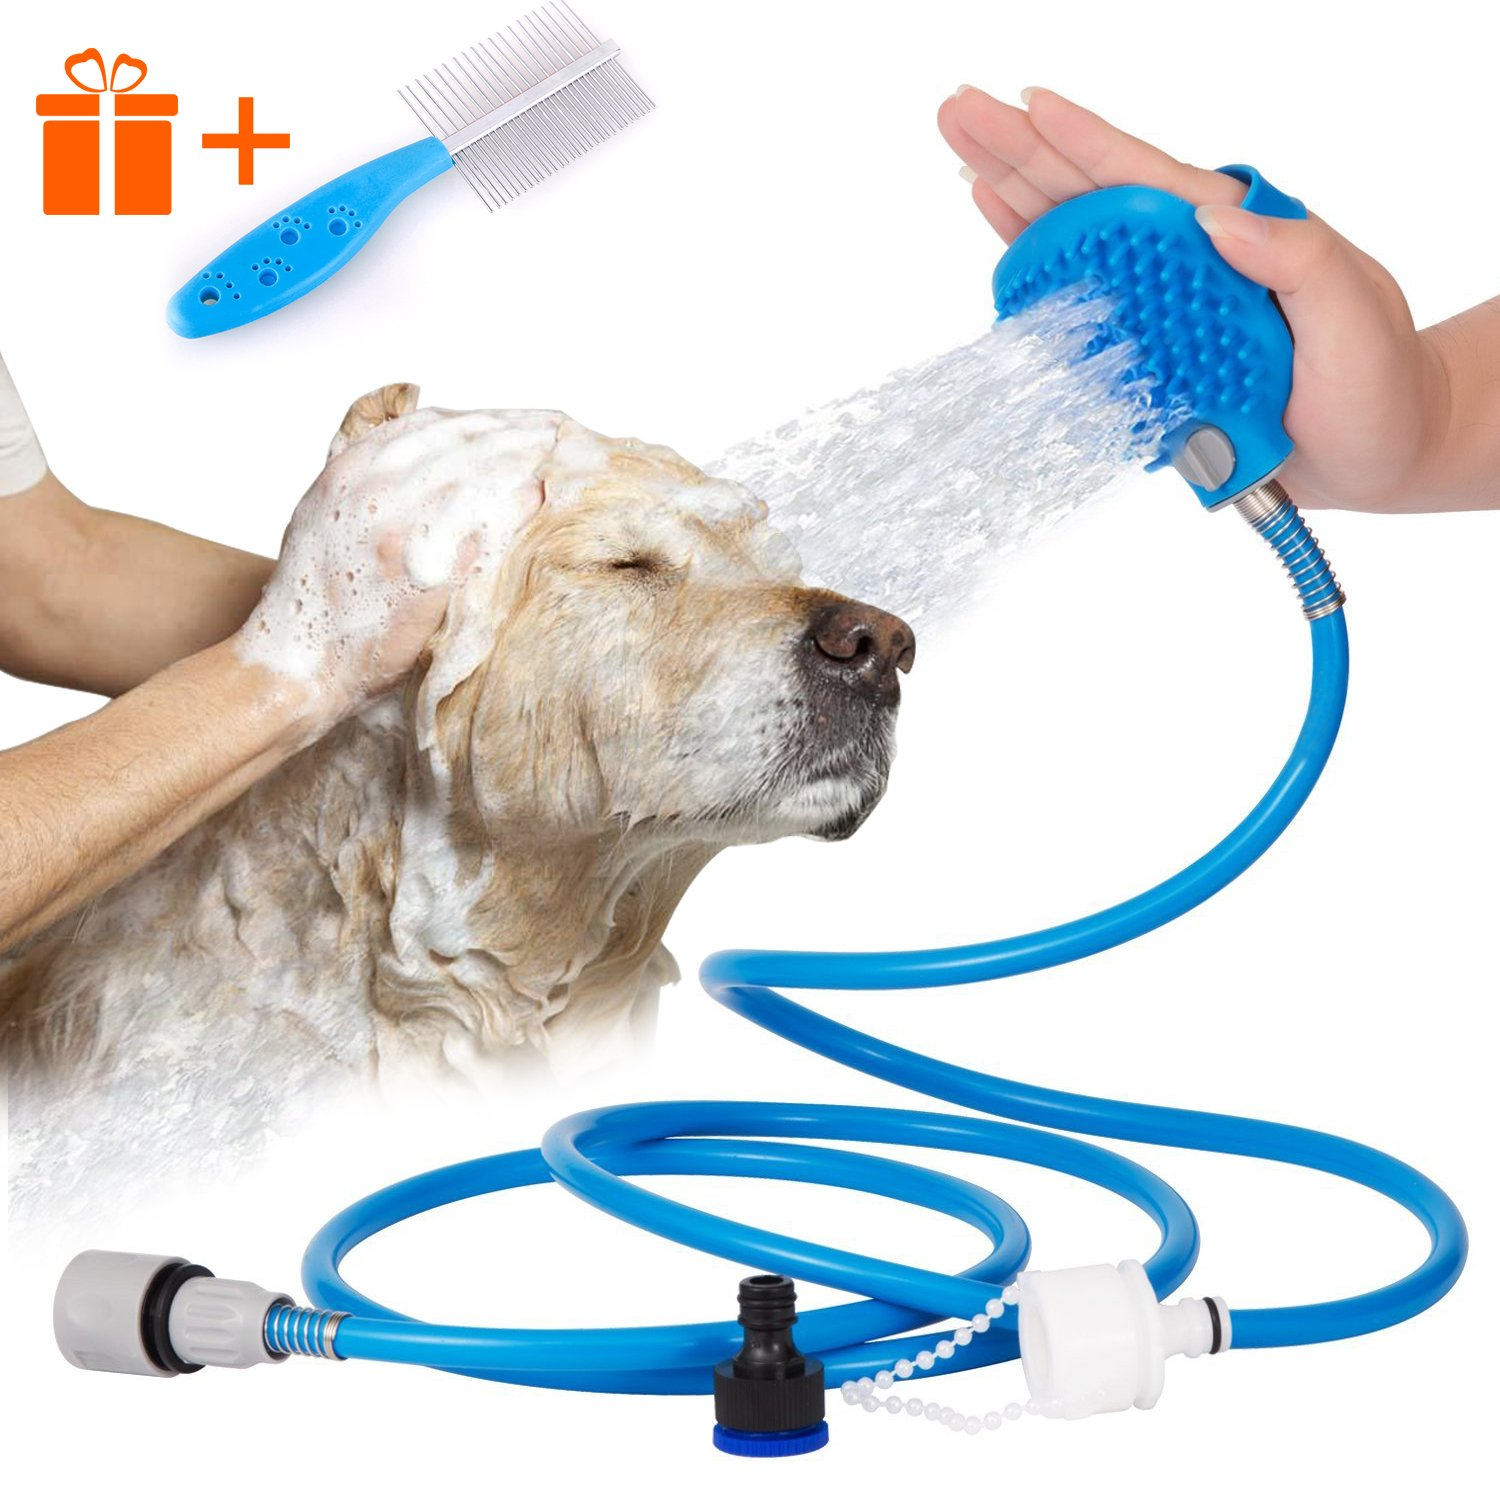 Doommy Pet Bathing Tool,Pet Shower Sprayer for Dogs Cats and Small & Medium Pets,Bathing Massage Combo with Grooming Brush and 2 Faucet Adapters, 7.5 ft Blue Hose for Indoor and Outdoor Using